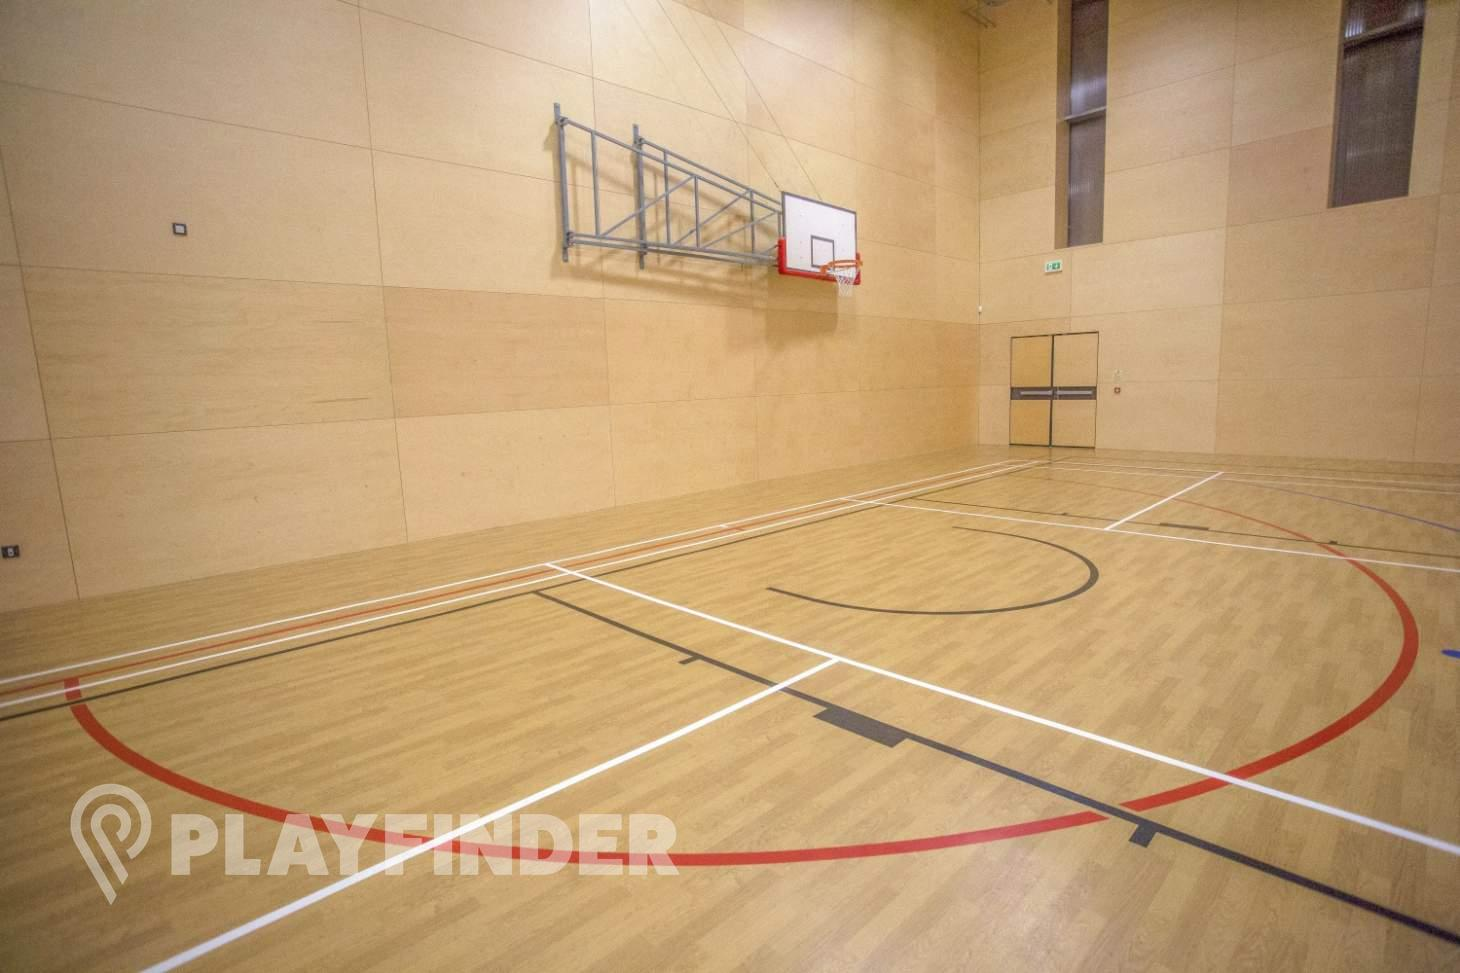 Harris Academy Bromley Indoor | Hard badminton court